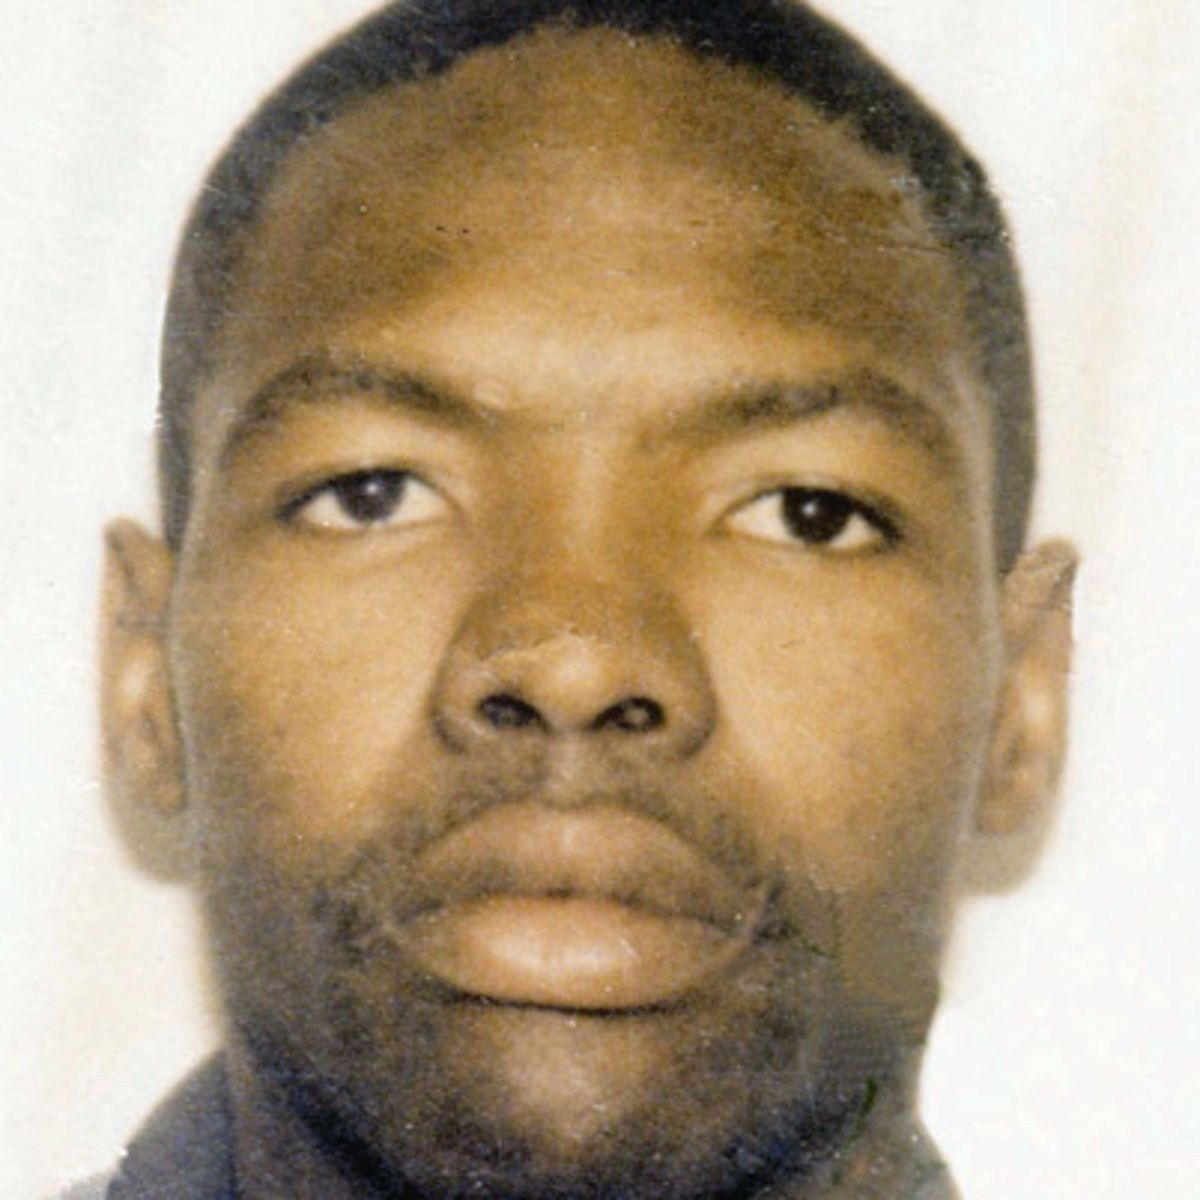 moses sithole born november 17 1964 was a south african serial killer